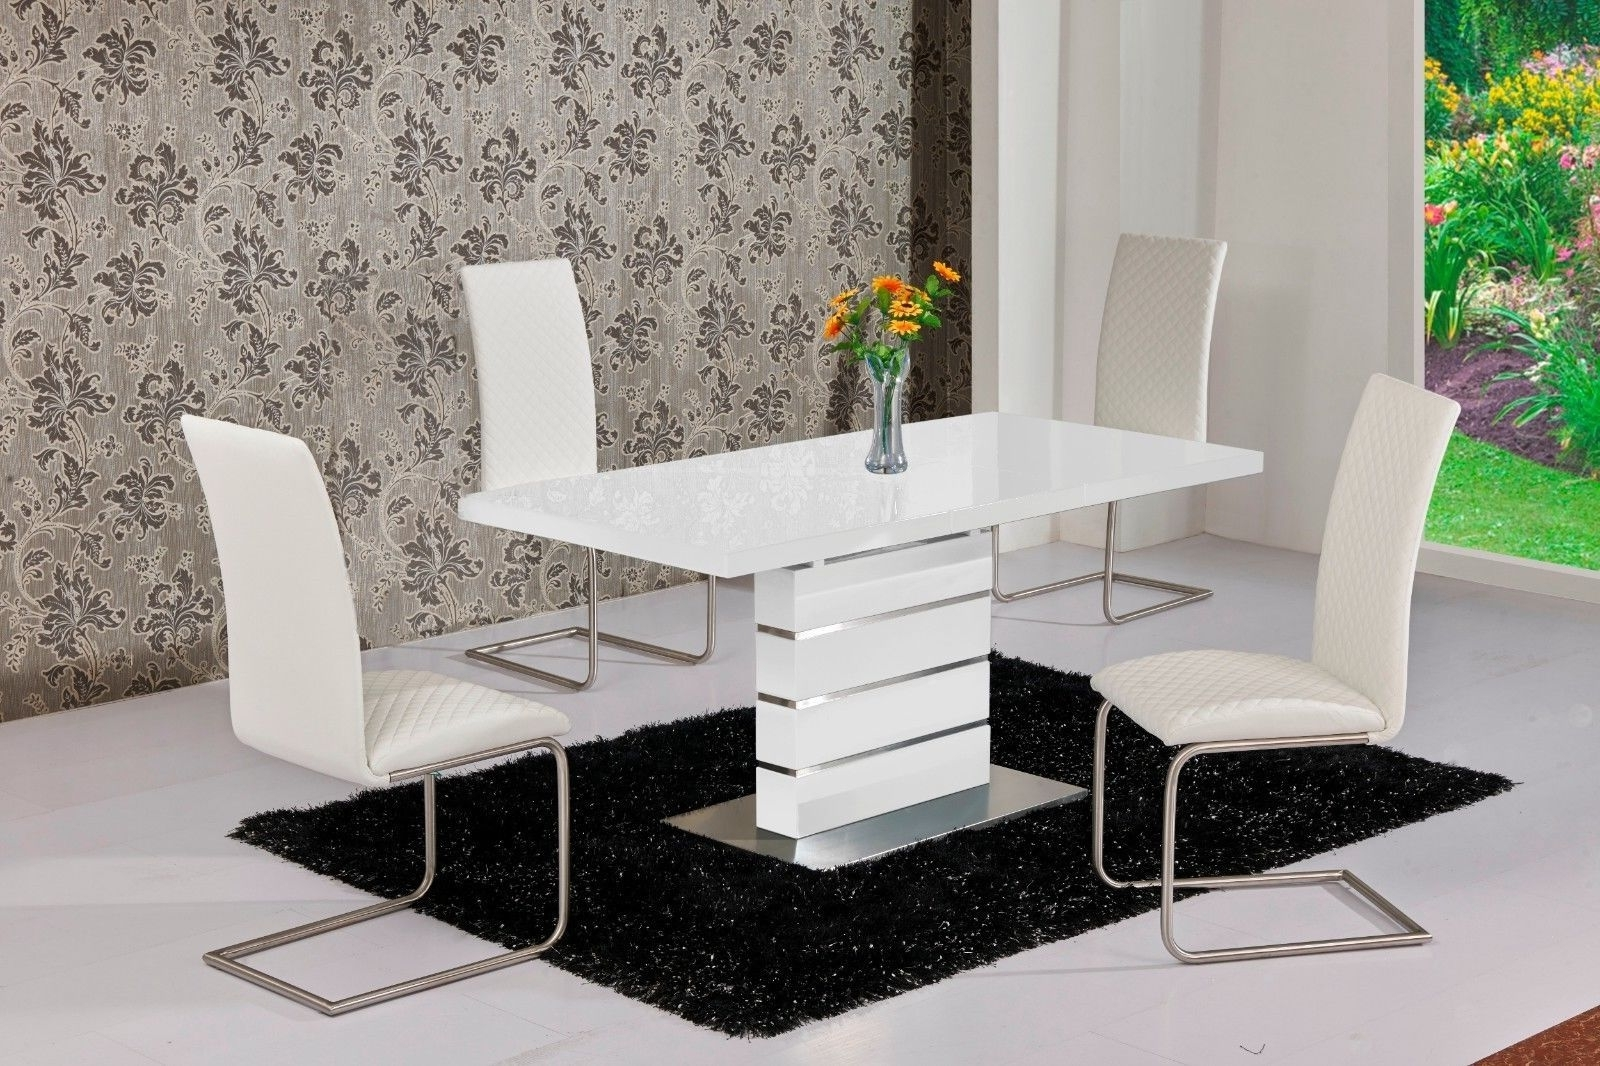 Mace High Gloss Extending 120 160 Dining Table & Chair Set – White For Fashionable Extending Dining Tables With 6 Chairs (View 11 of 25)